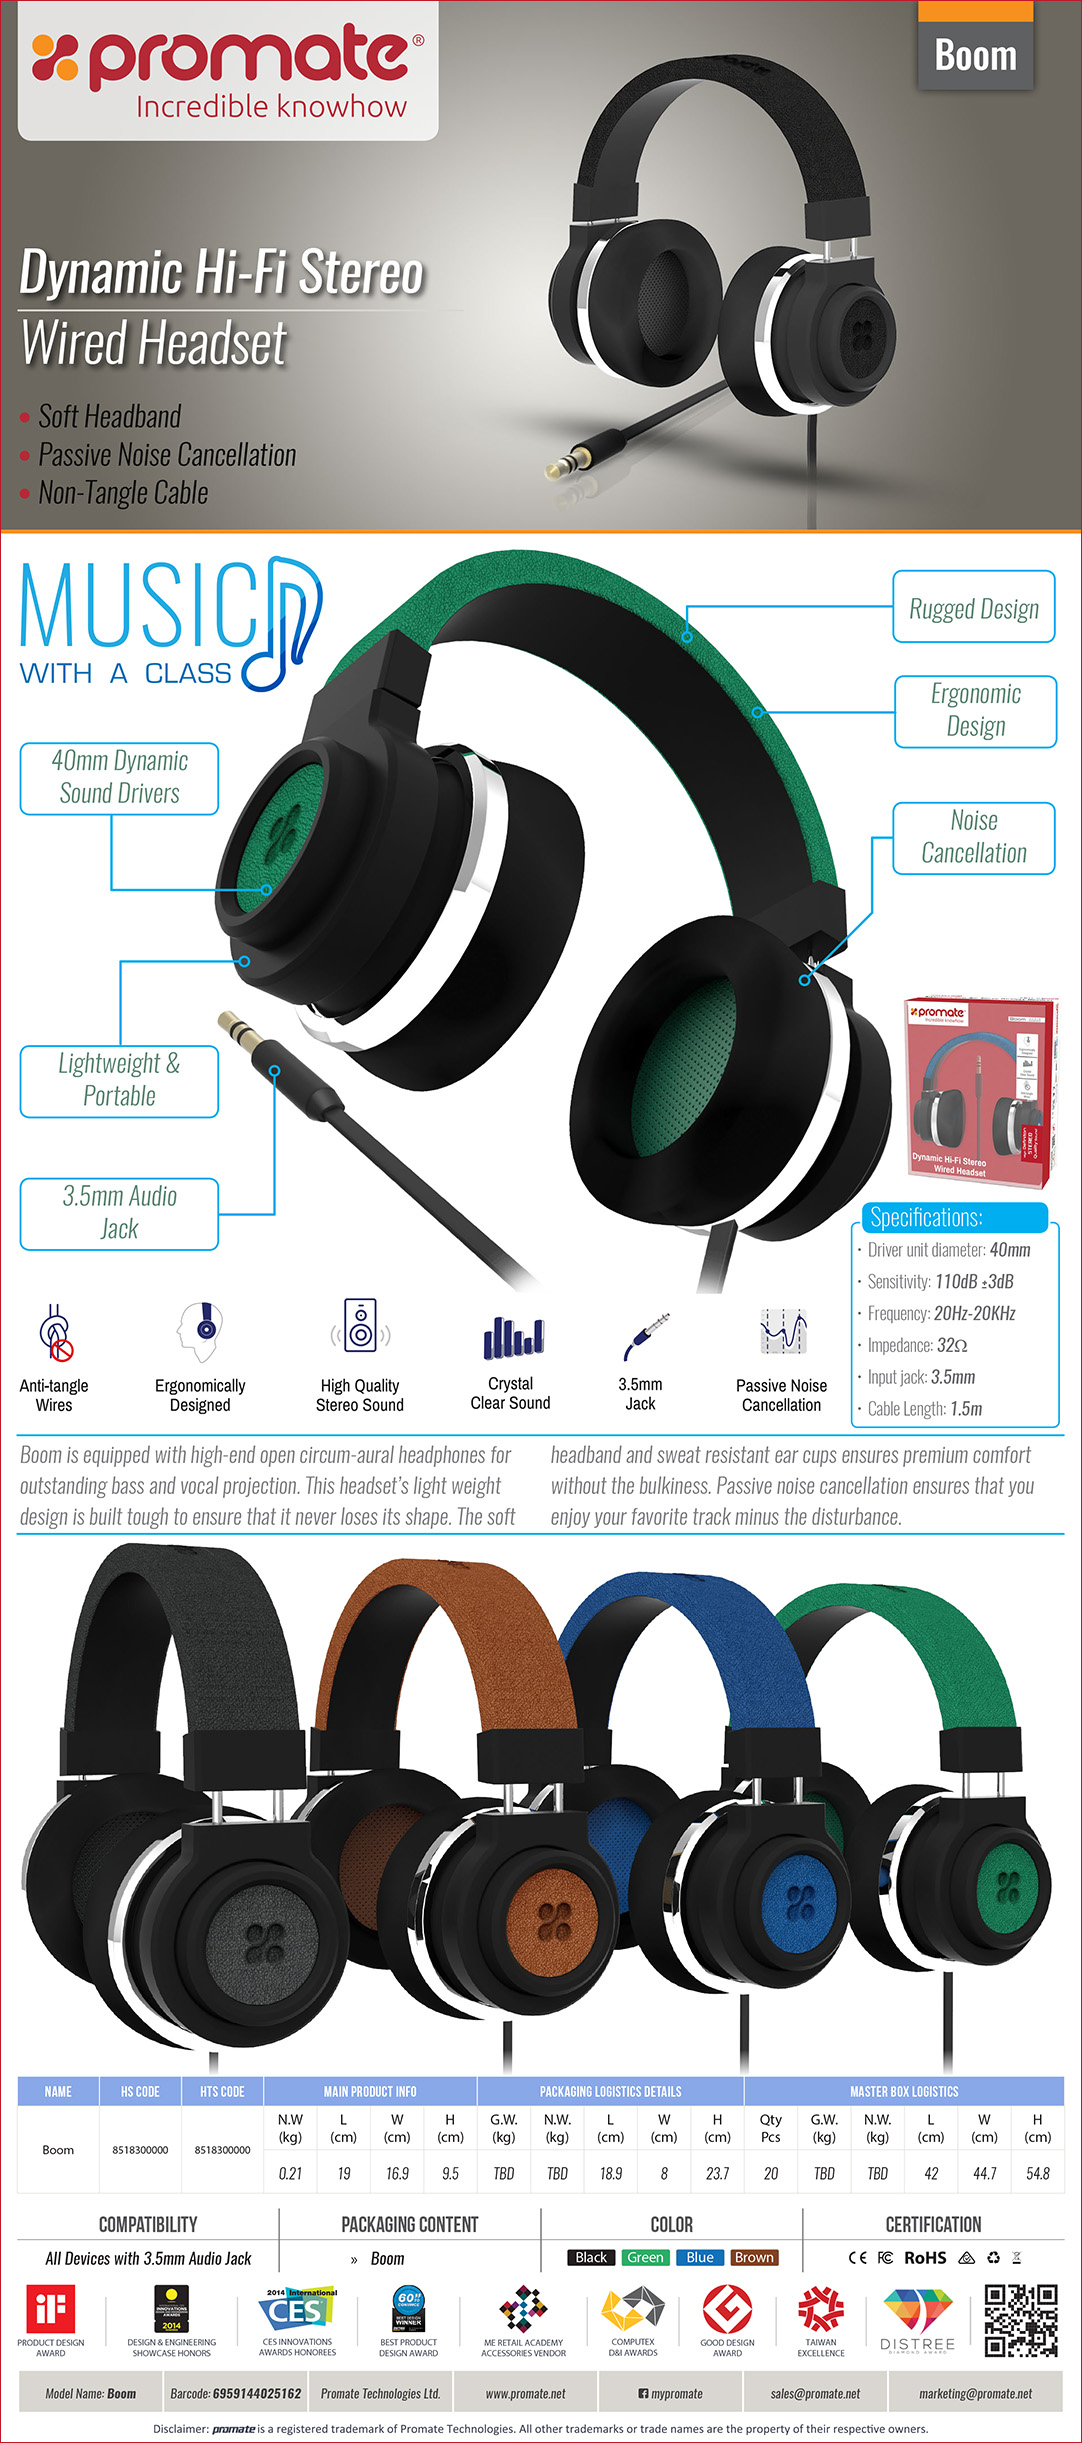 33a6b15bb97 Promate Boom 110dB Dynamic Hi-Fi Stereo Wired Headset with Passive ...